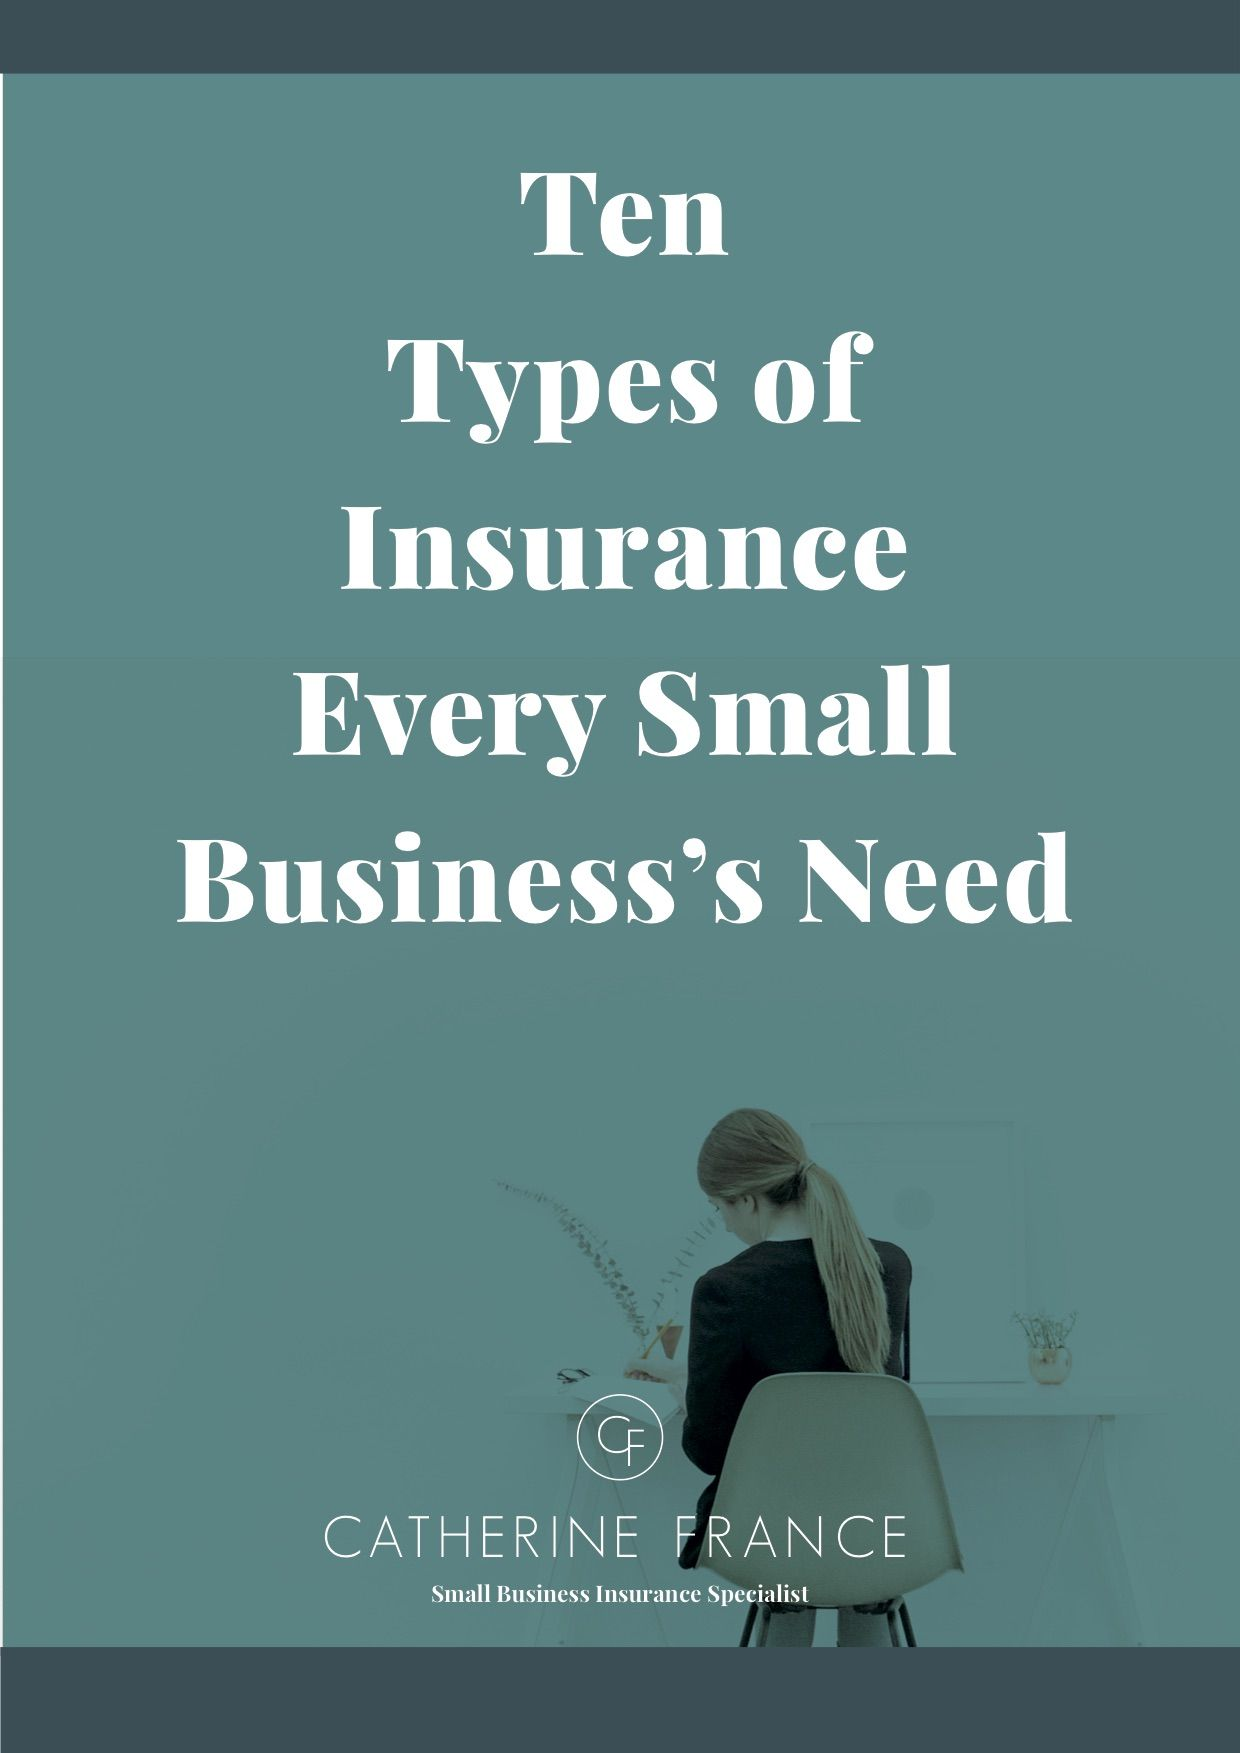 Are You A Small Business Struggling To Understand What Insurance